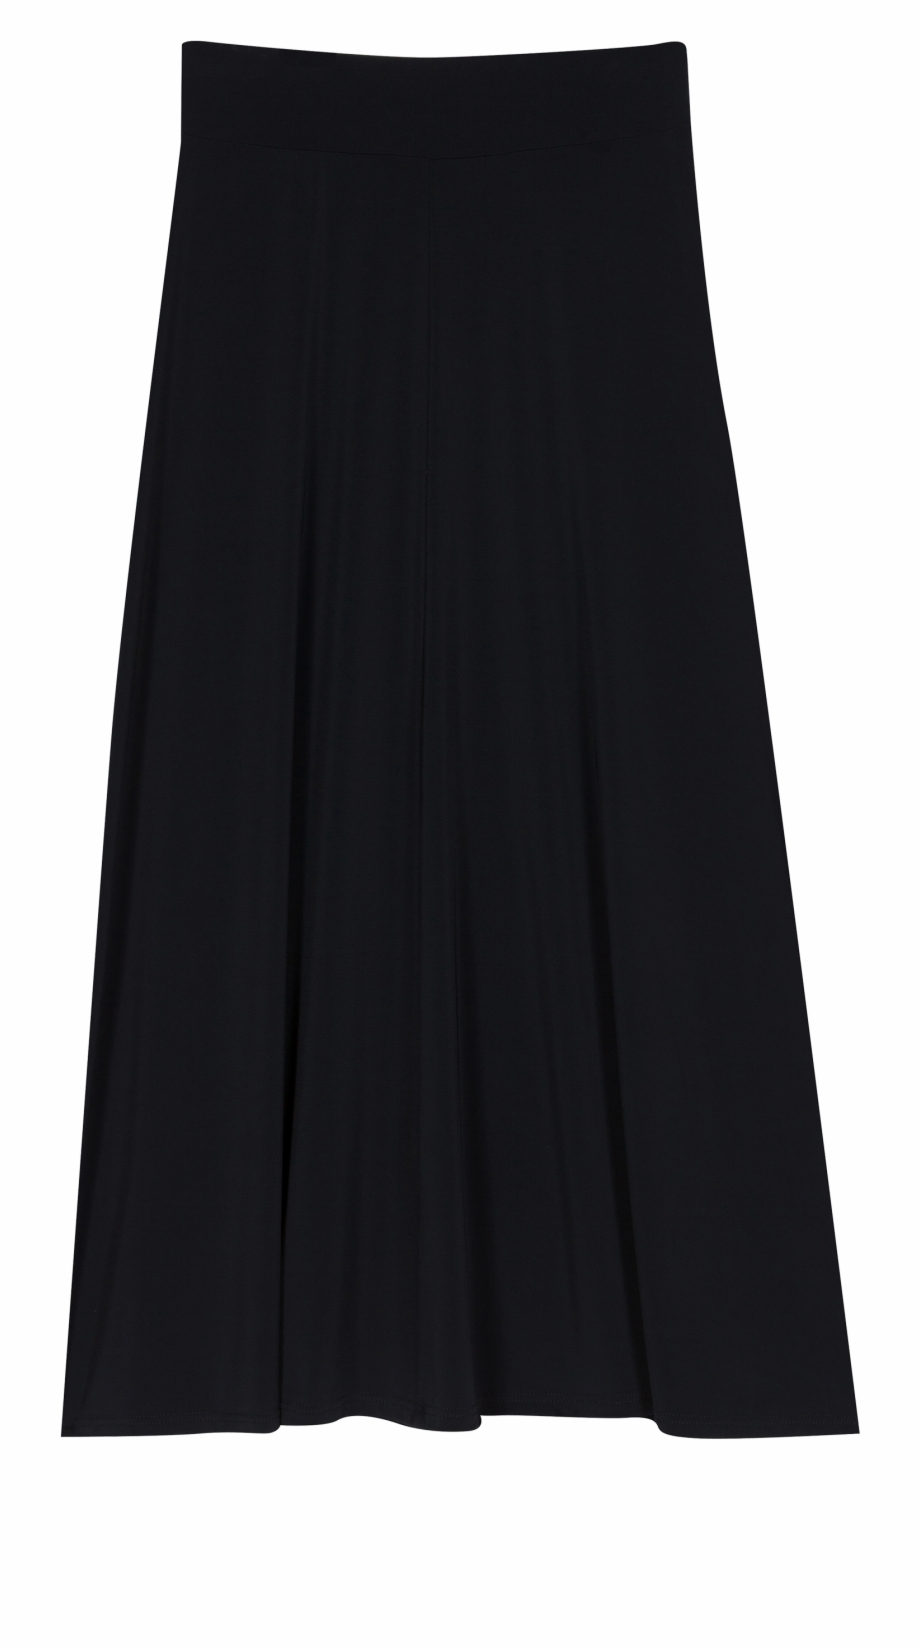 Black Long Skirt Trousers.